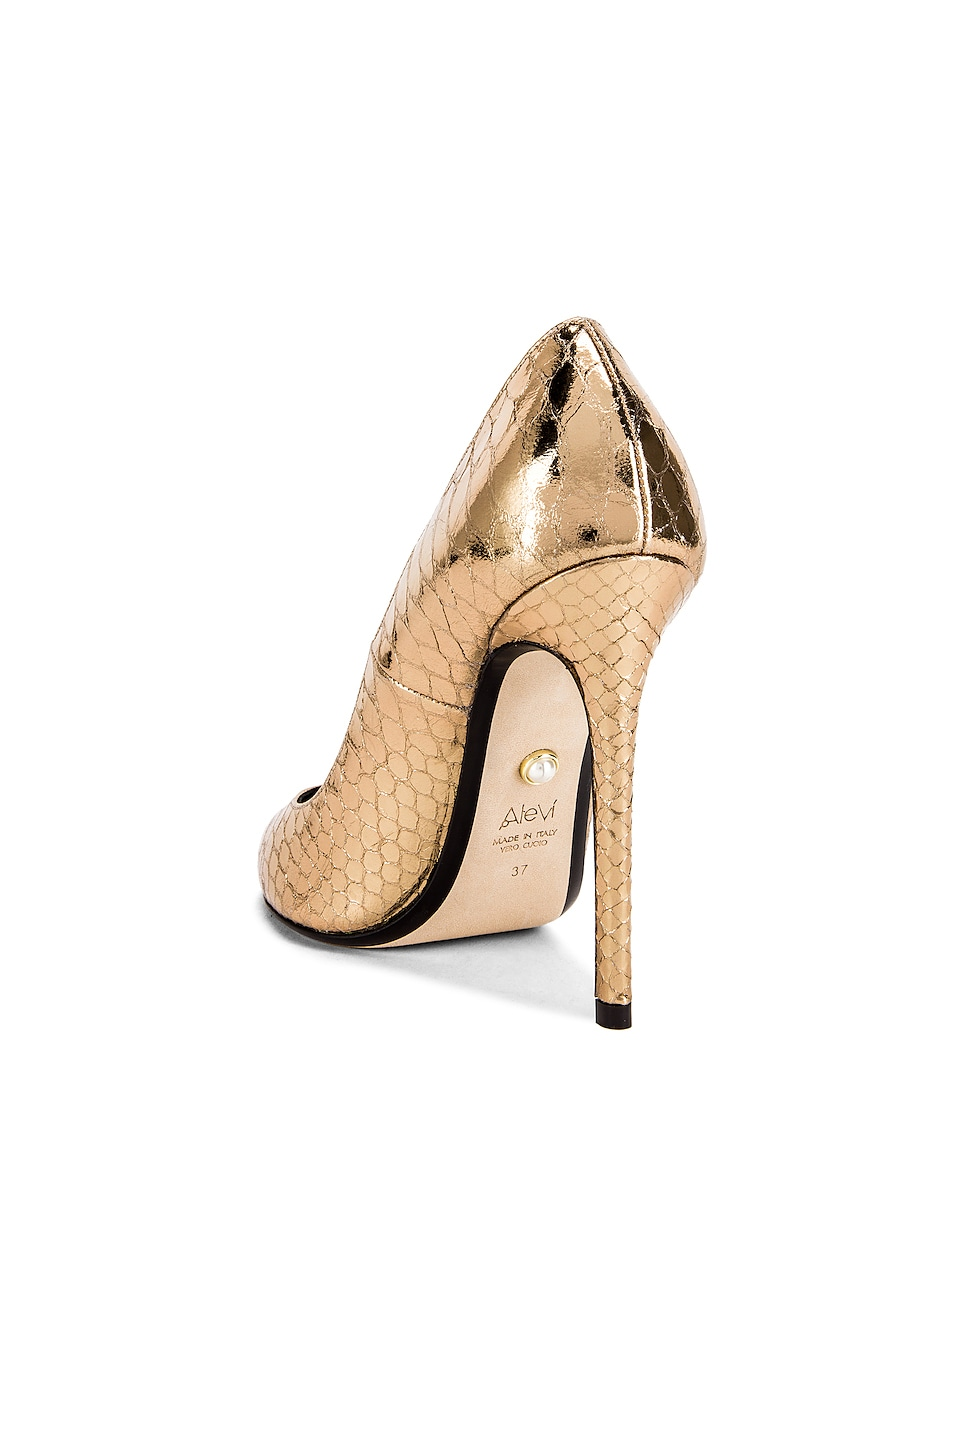 Image 3 of ALEVI Milano Alevi Carrie Pump in Gold Snake